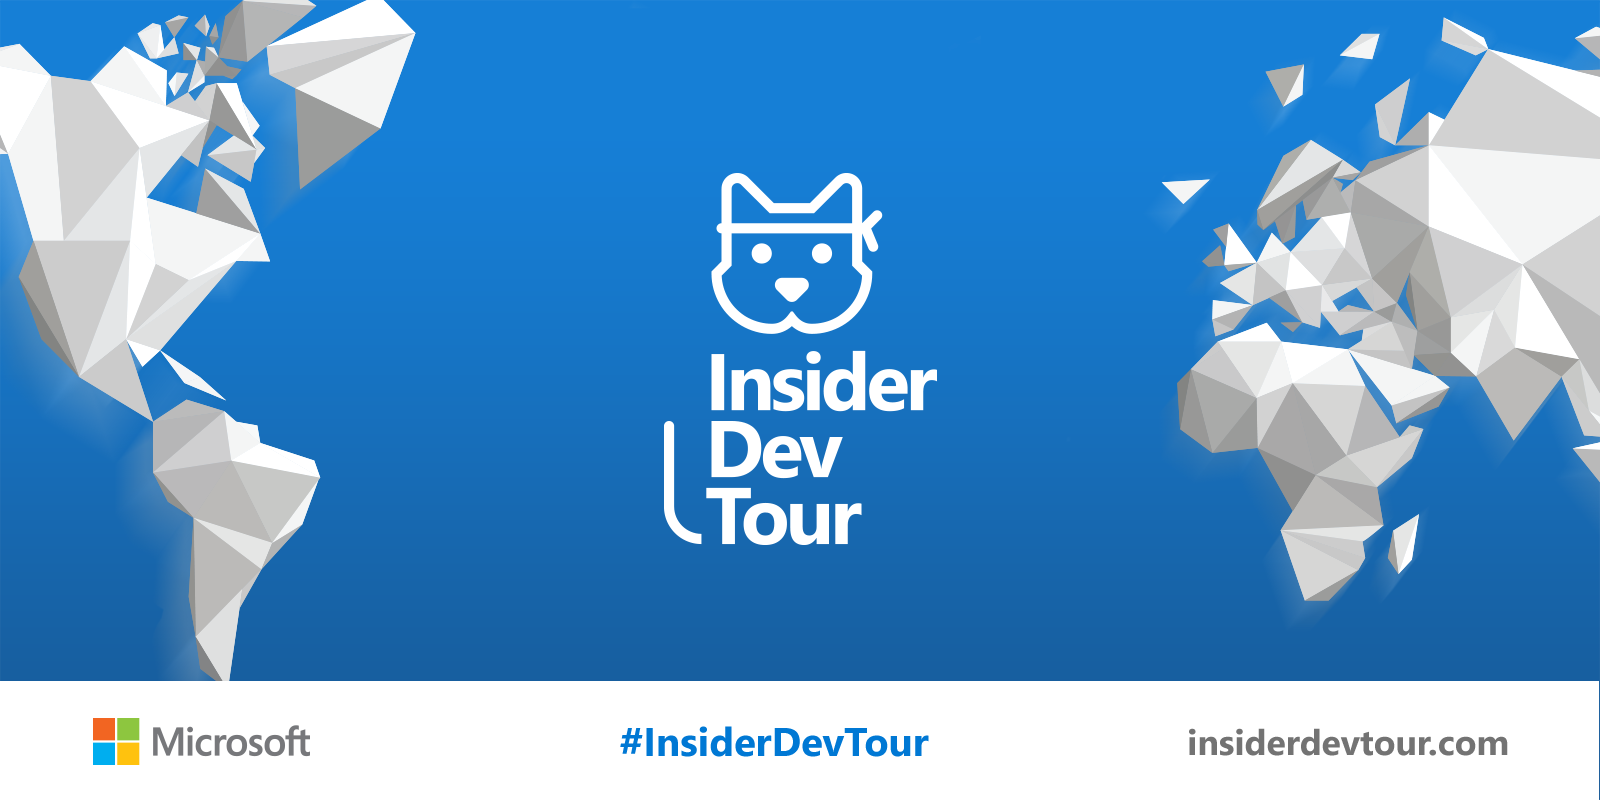 Join me at the Microsoft Insider Dev Tour in Lisbon on June